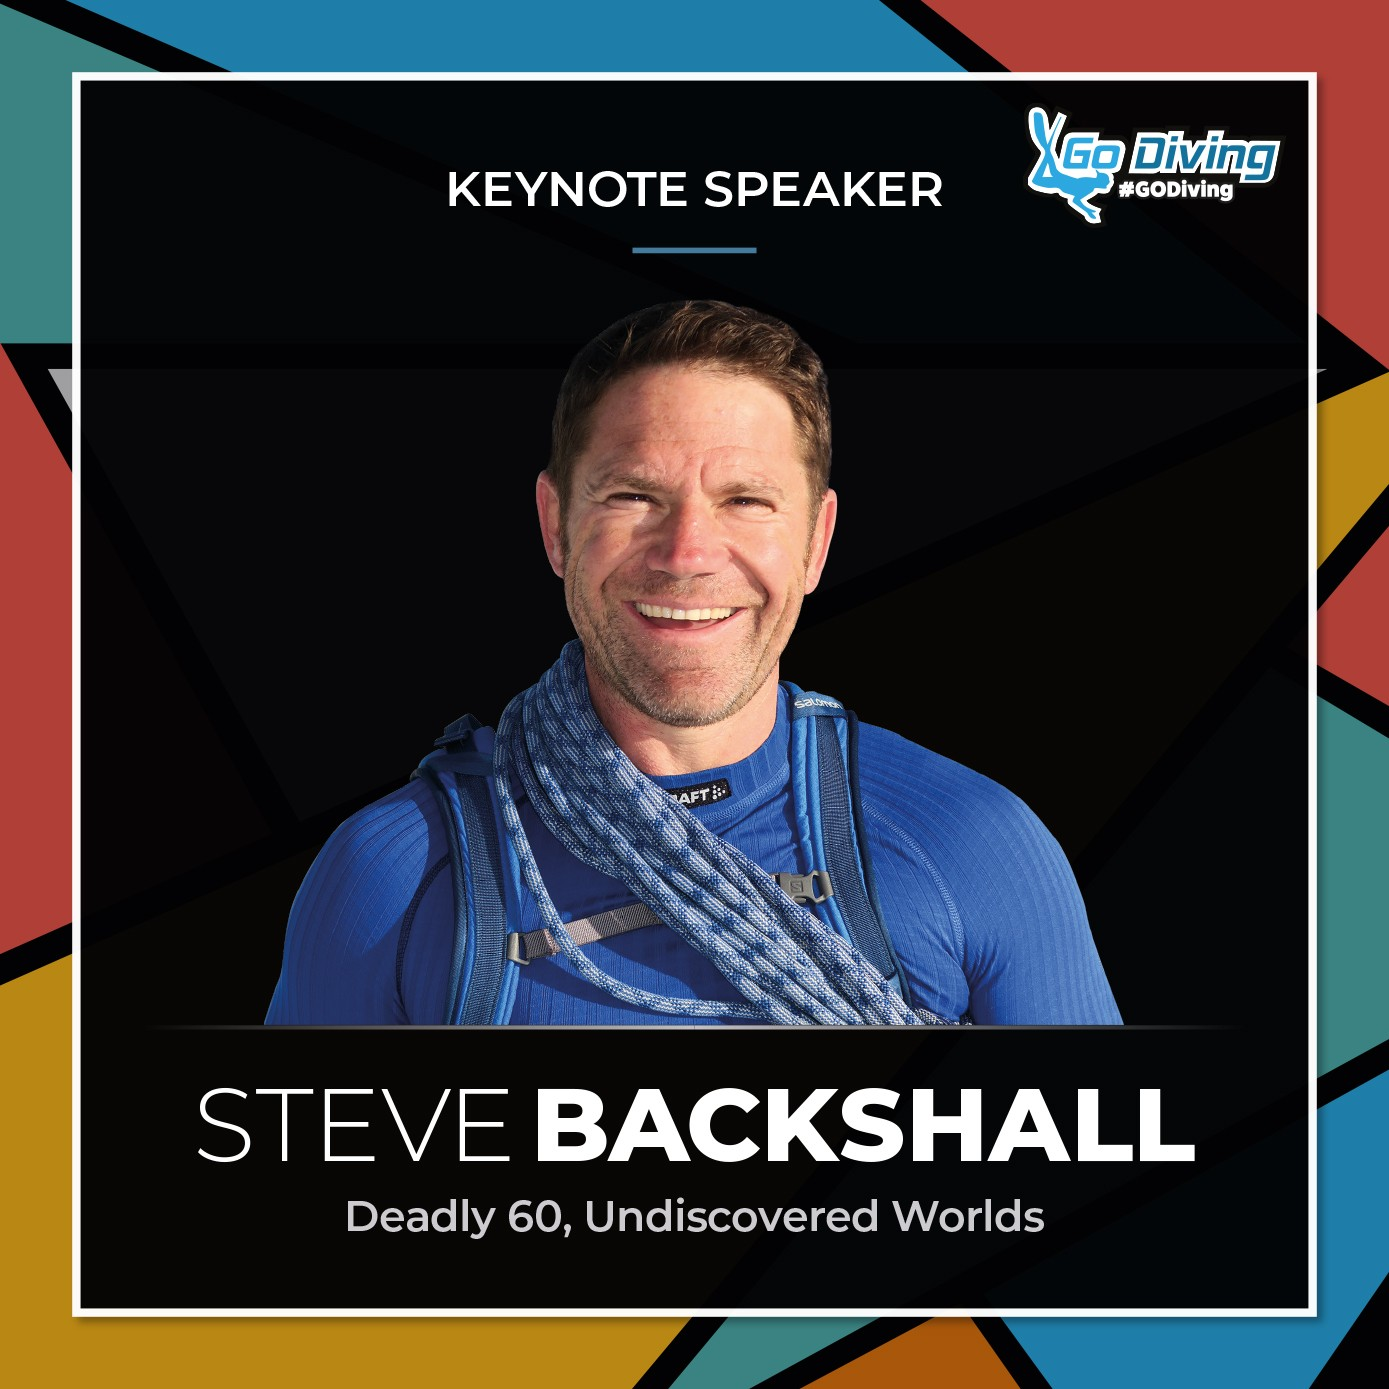 Be inspired at GO Diving Show by Steve Backshall, Andy Torbet, Miranda Krestovnikoff and Monty Halls 2